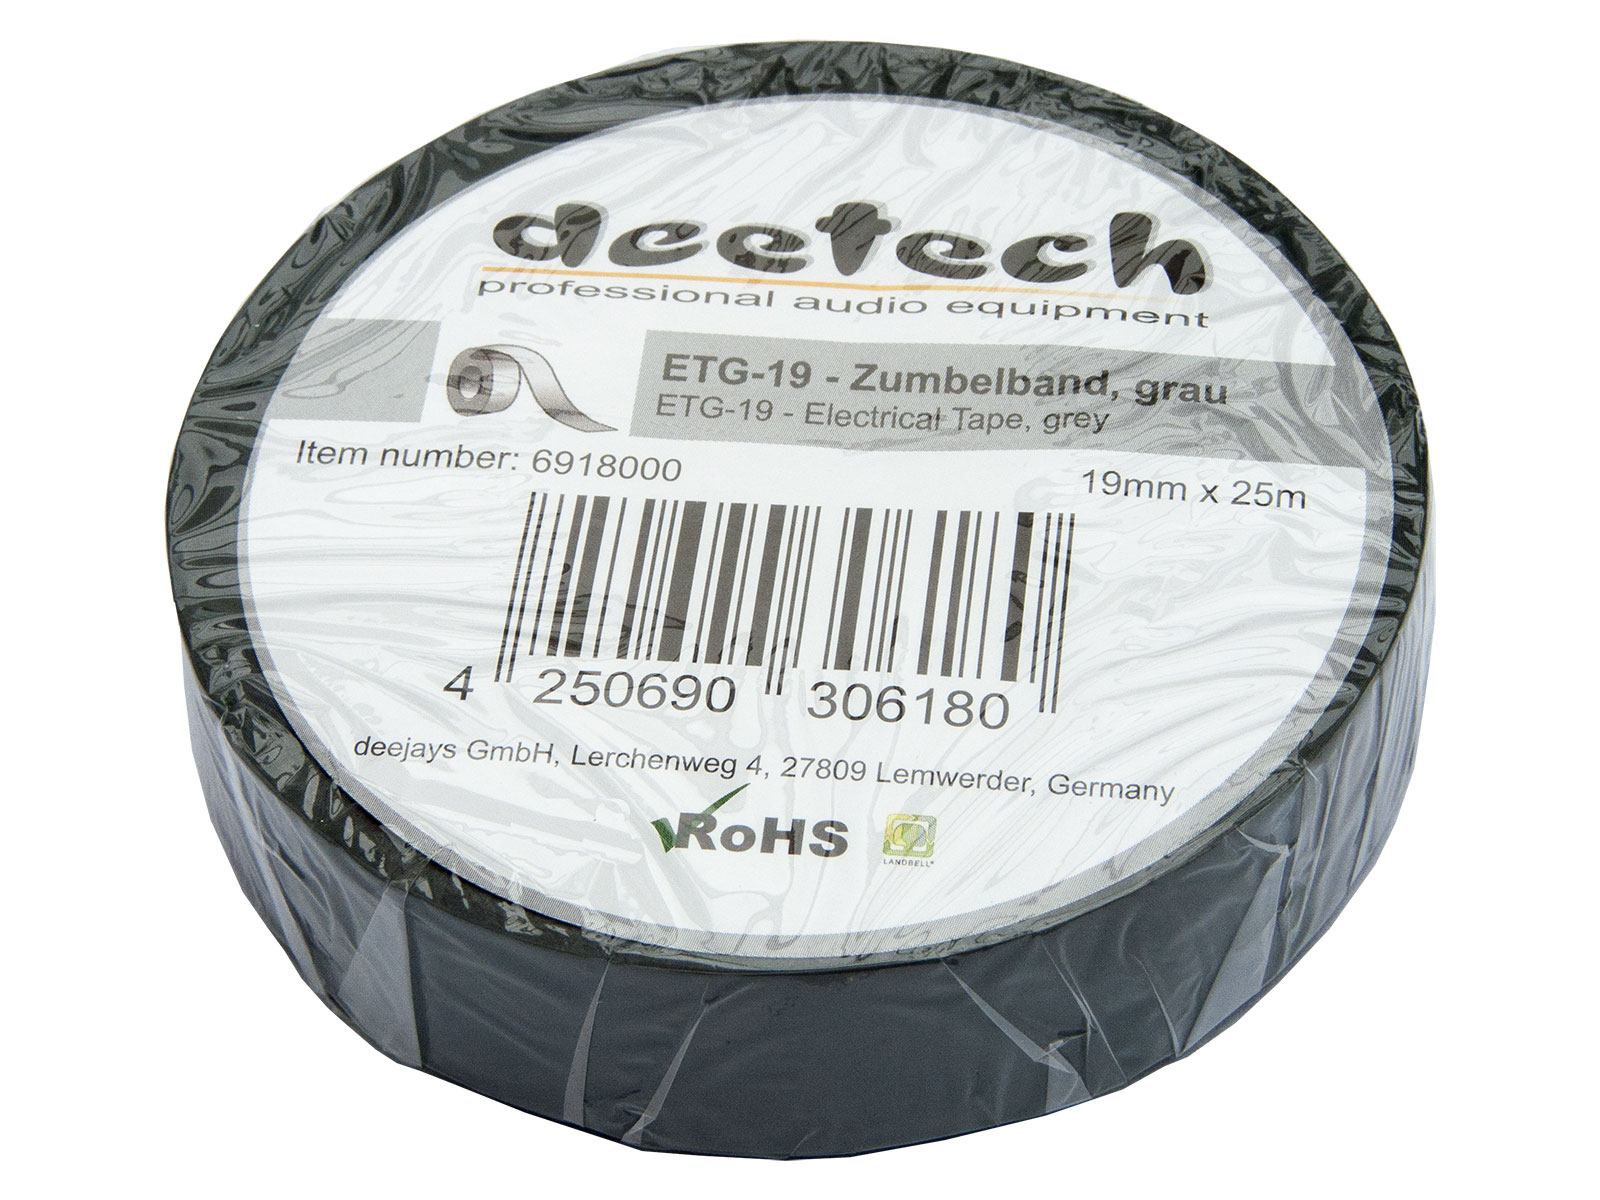 Isotape Isotape 19mm x 25m Rolle black PVC Band Isolierband Zumbelband